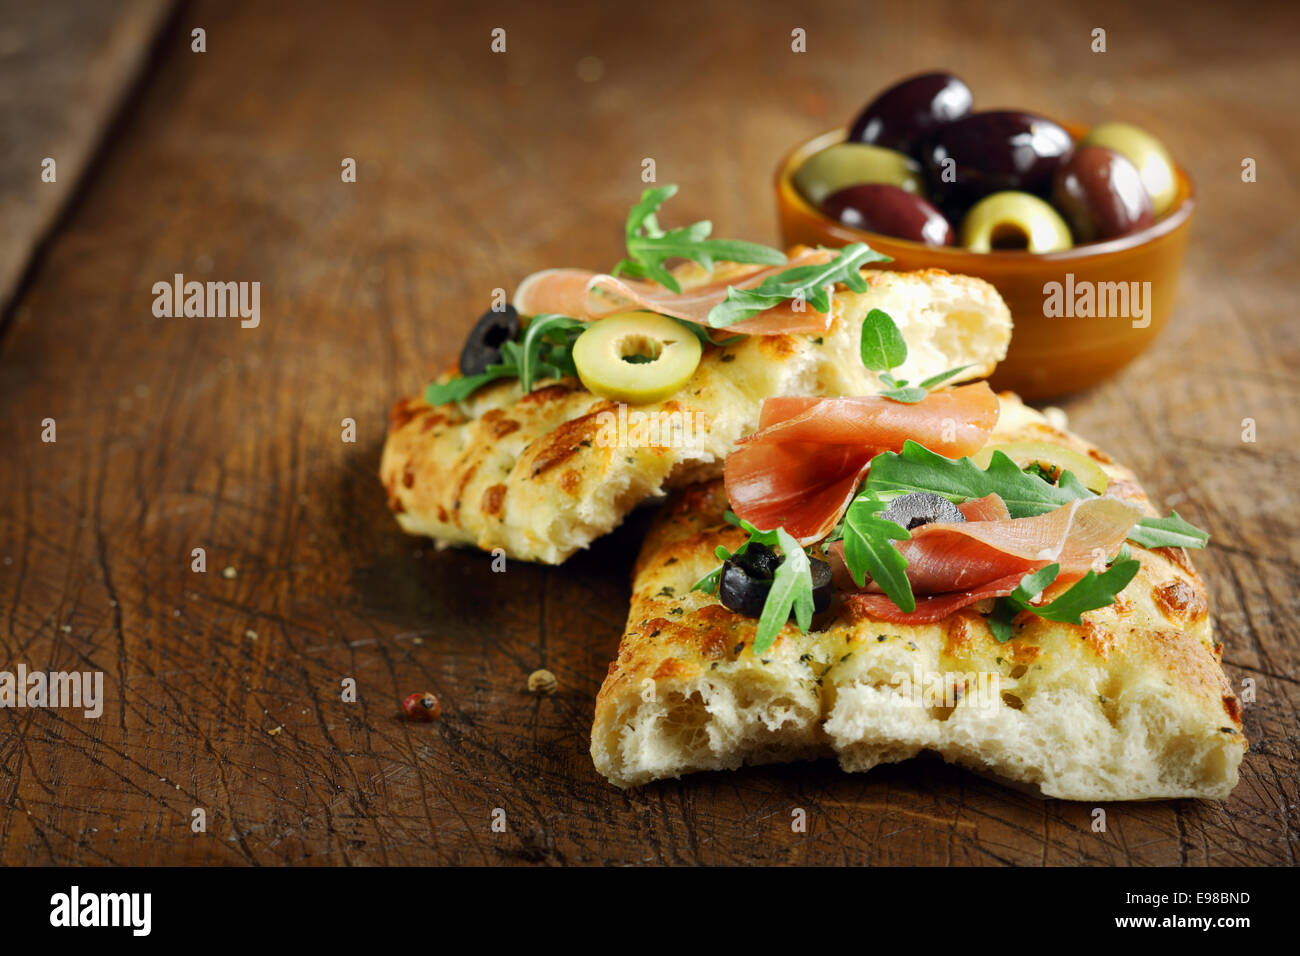 Ham and rocket on fresh Italian focaccia bread garnished with sliced olives lying on an old wooden kitchen table - Stock Image